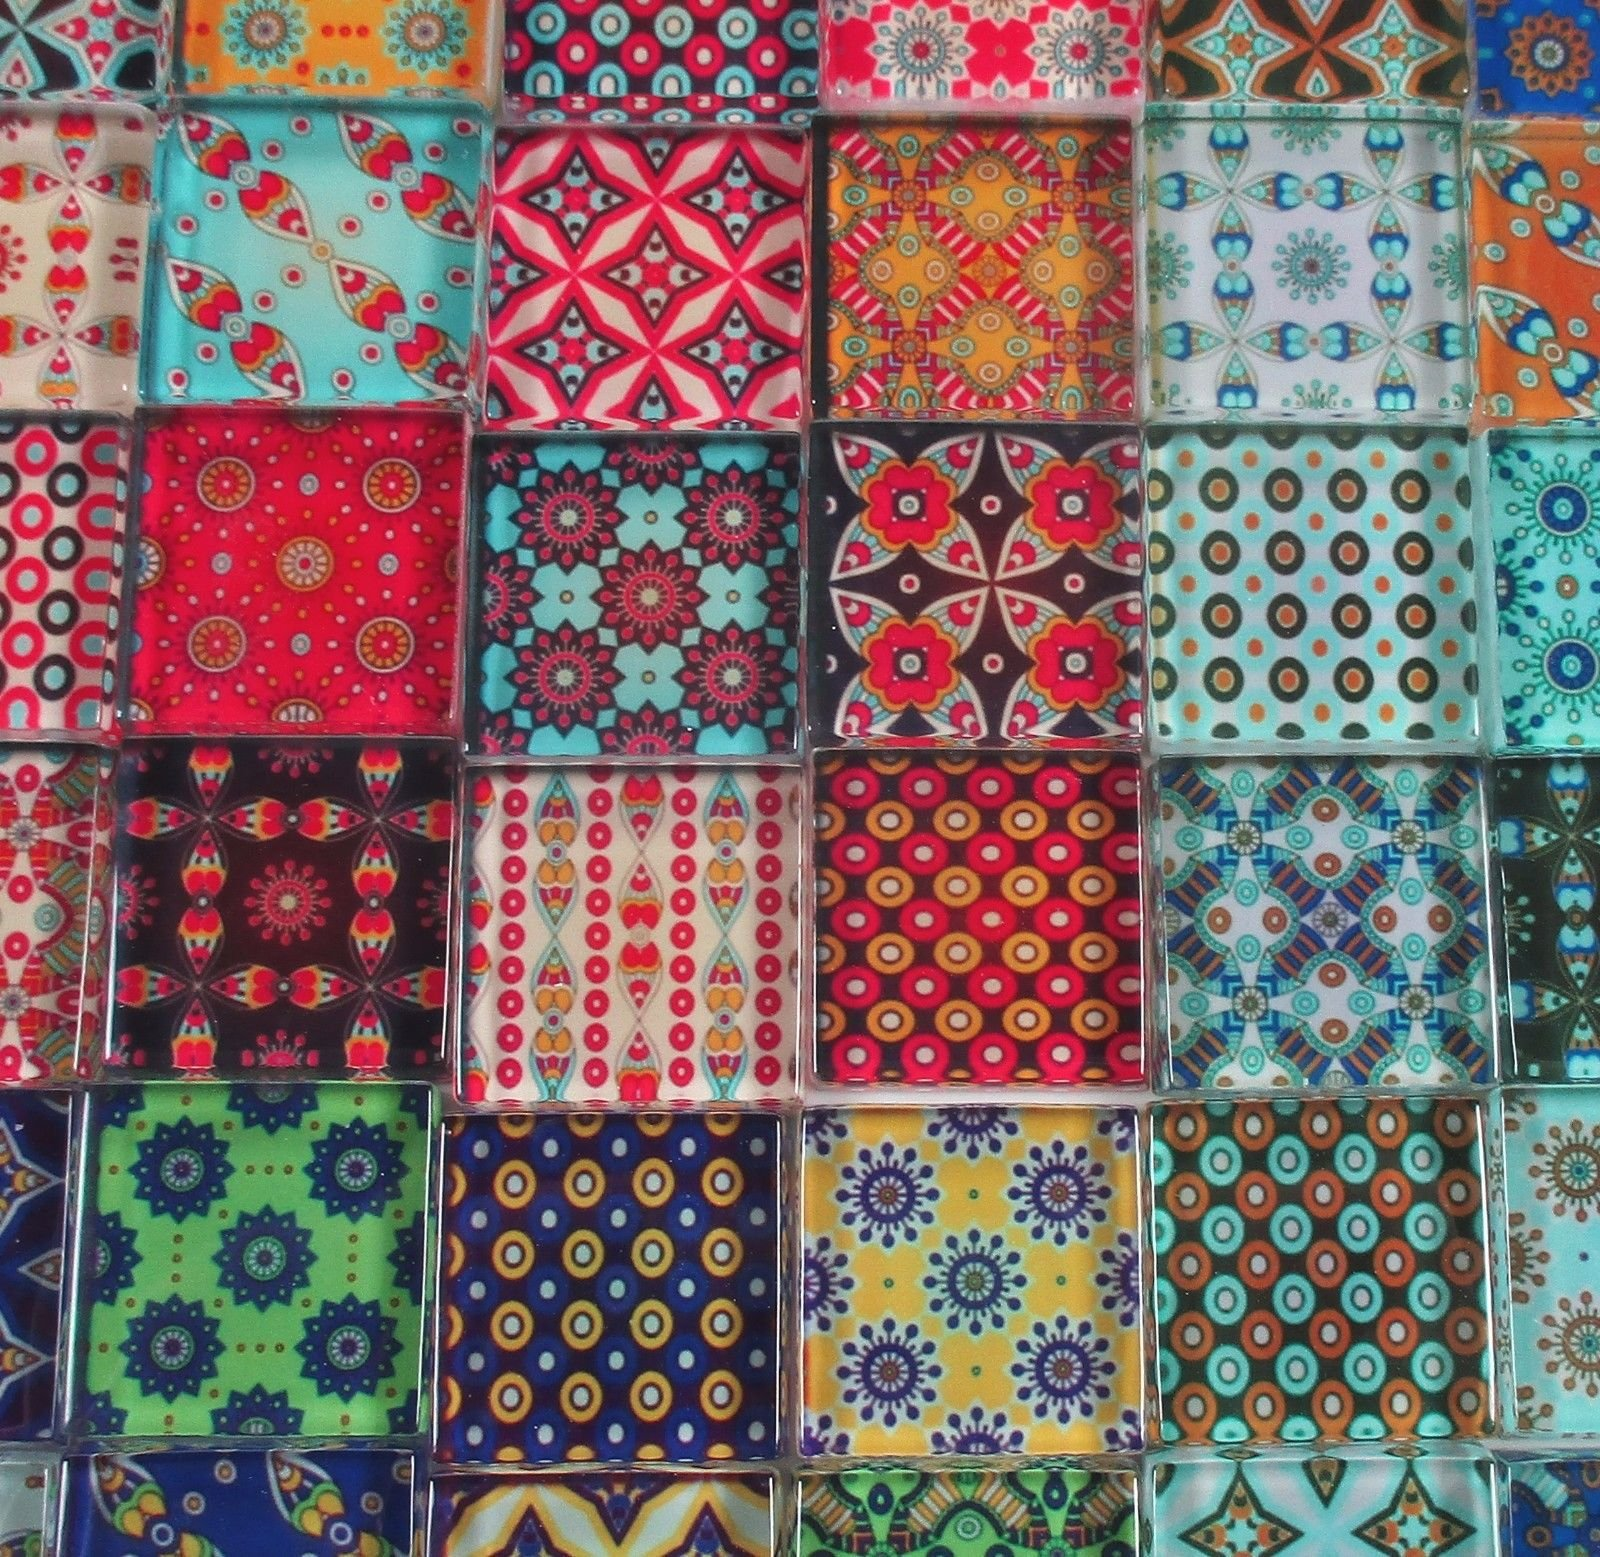 Glass Mosaic Tiles - Boho Gypsy Patchwork Mixed Designs Bright Colors 1'' Squares